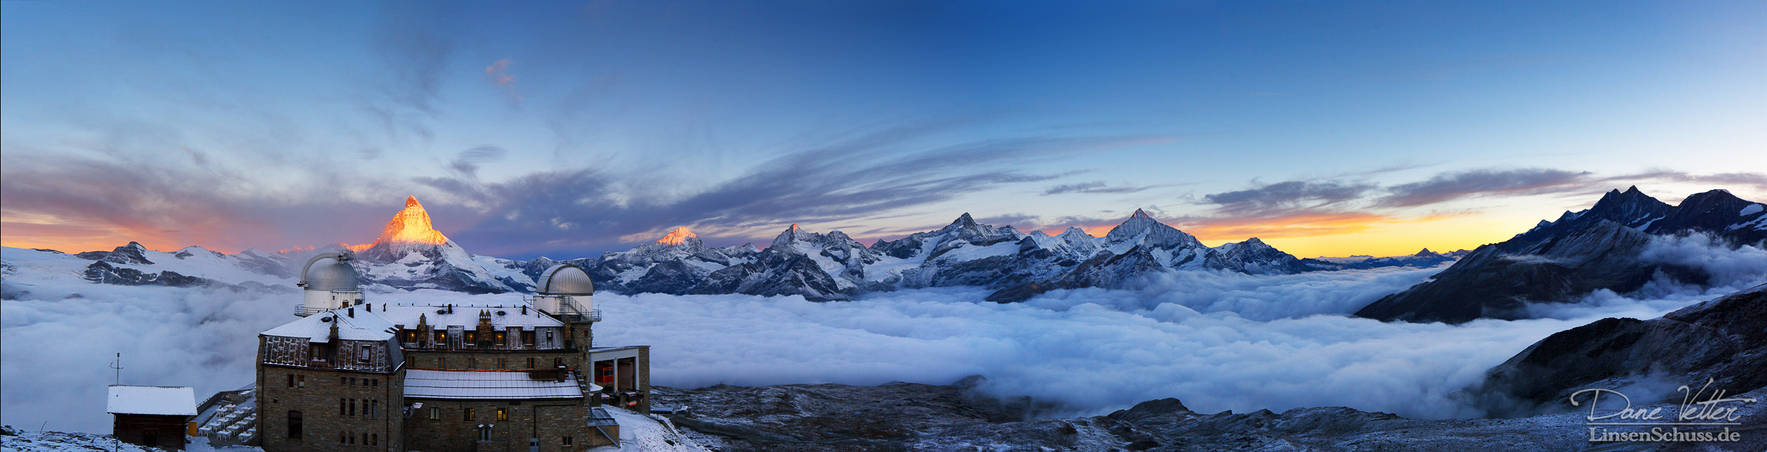 The view of the Swiss Alps